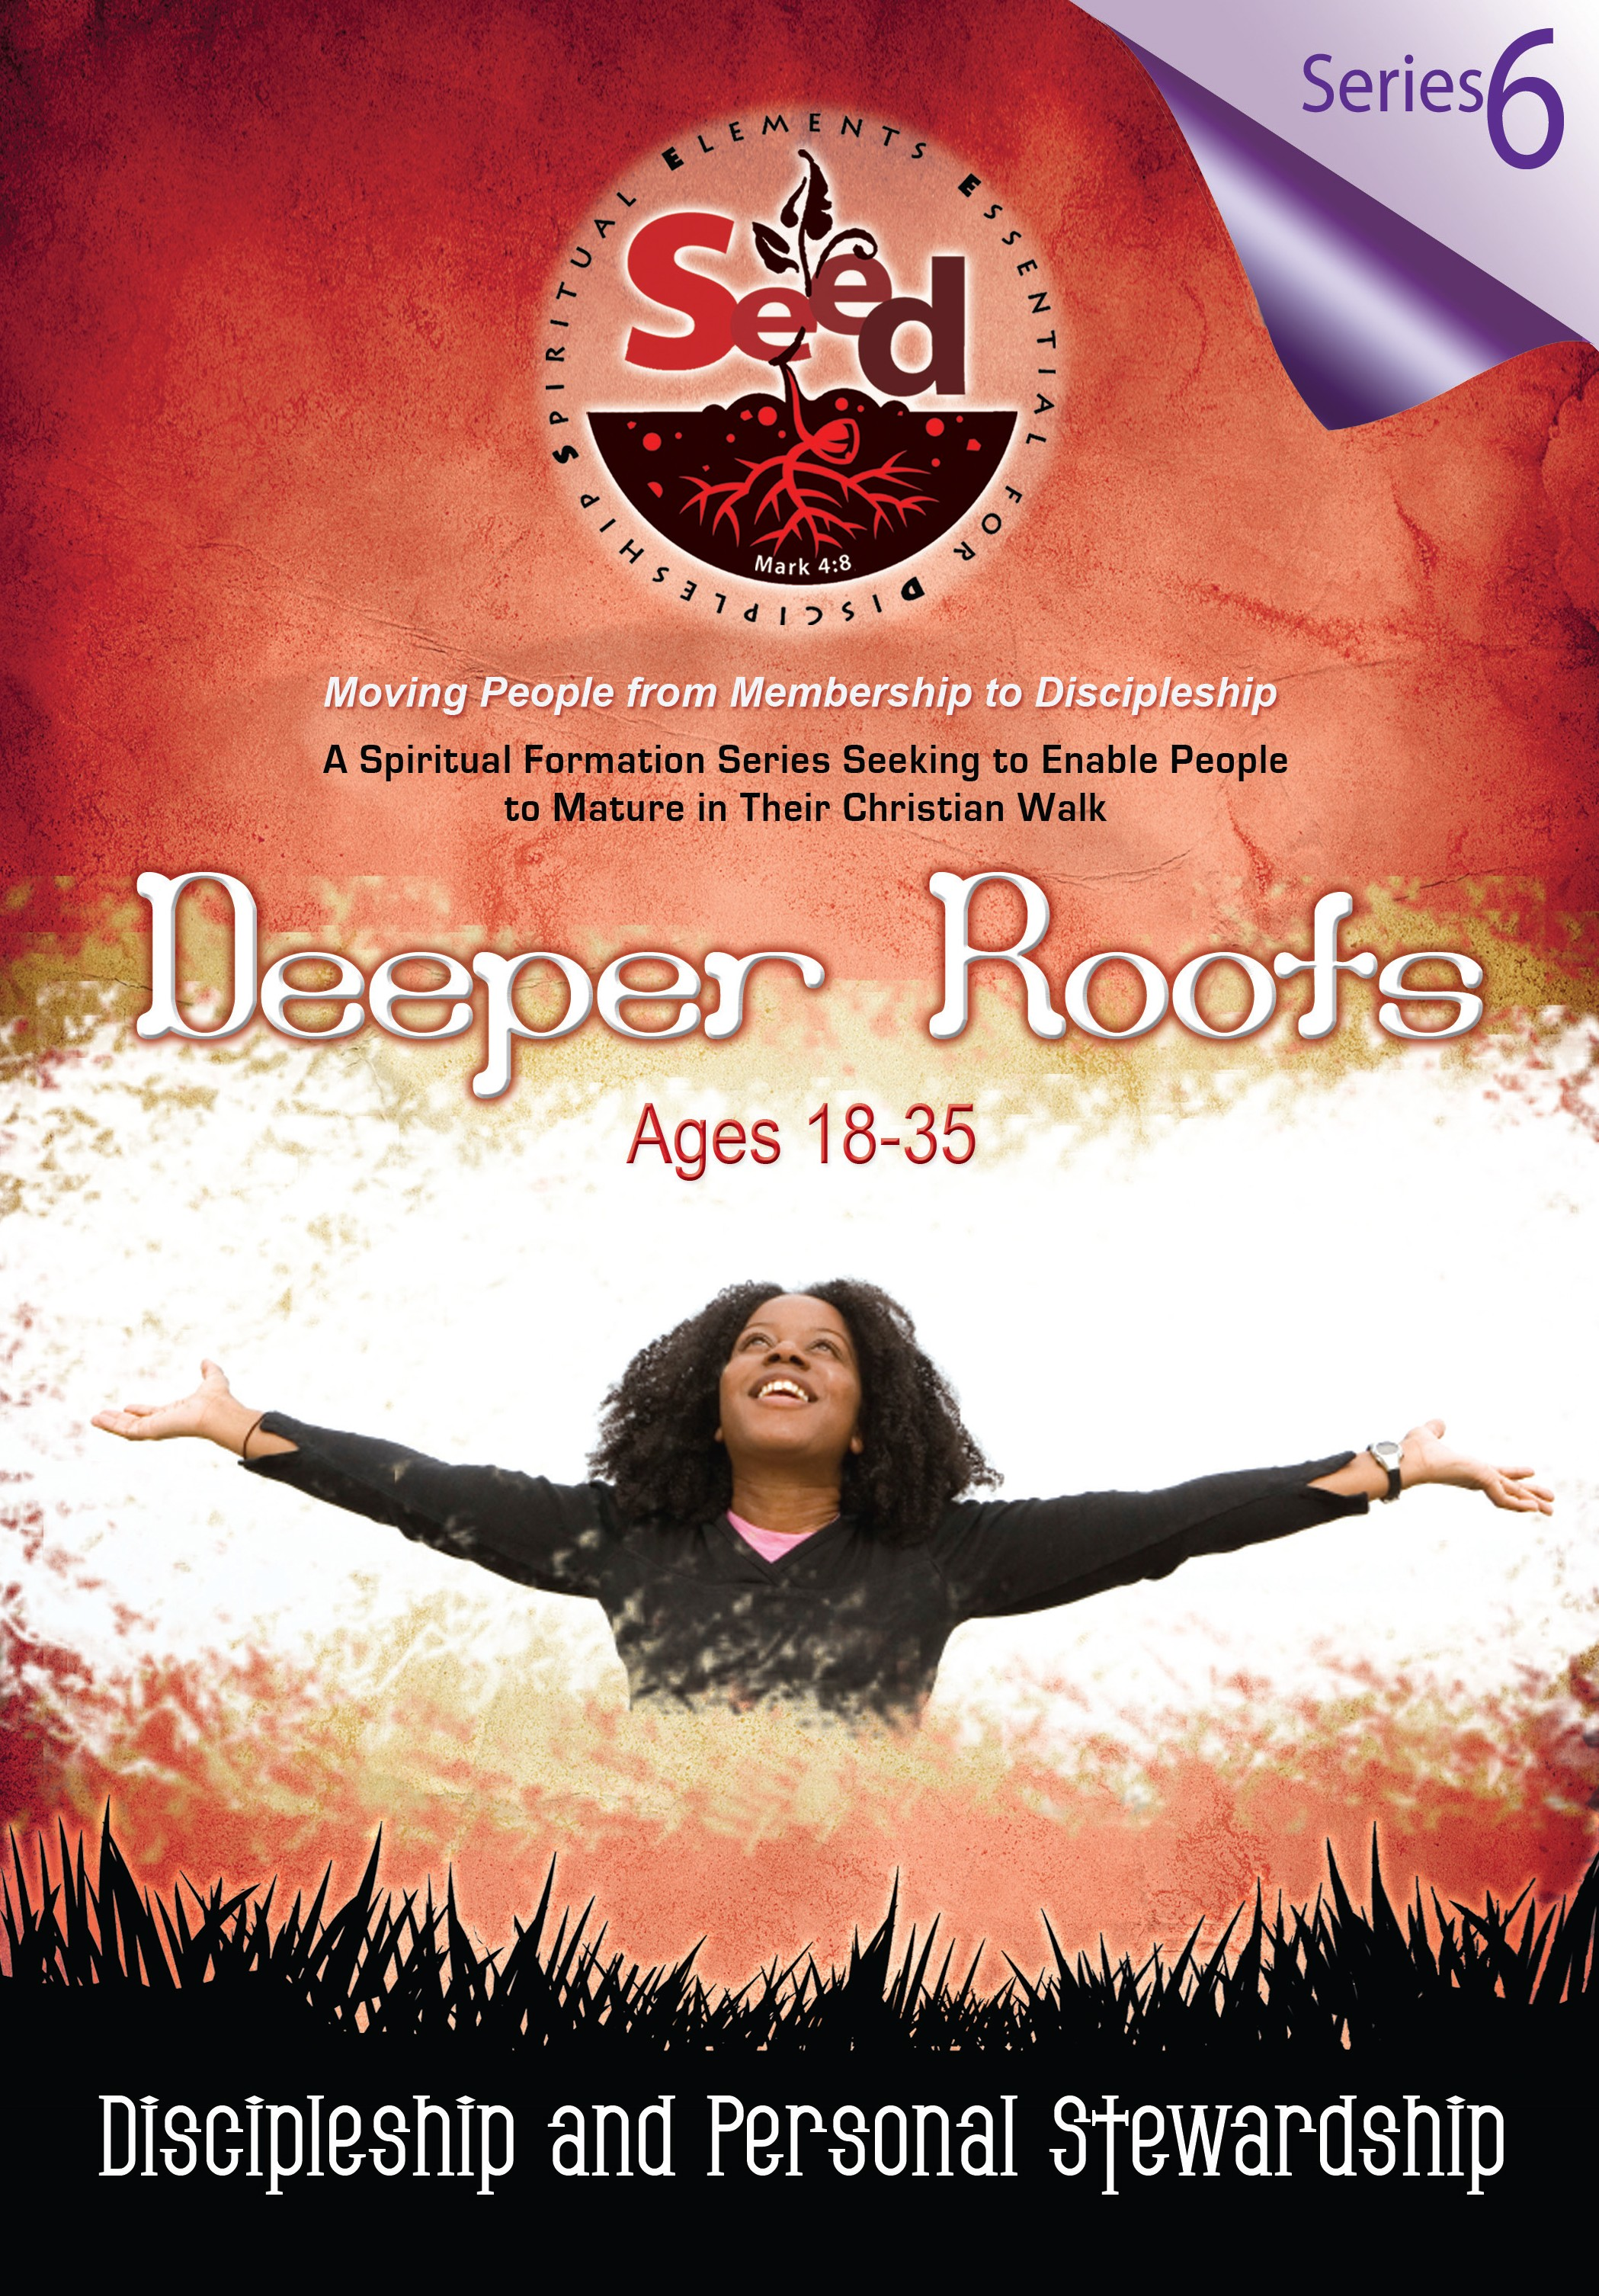 SEED Deeper Roots (Ages18-35): Series 6: Discipleship and Personal Stewardship